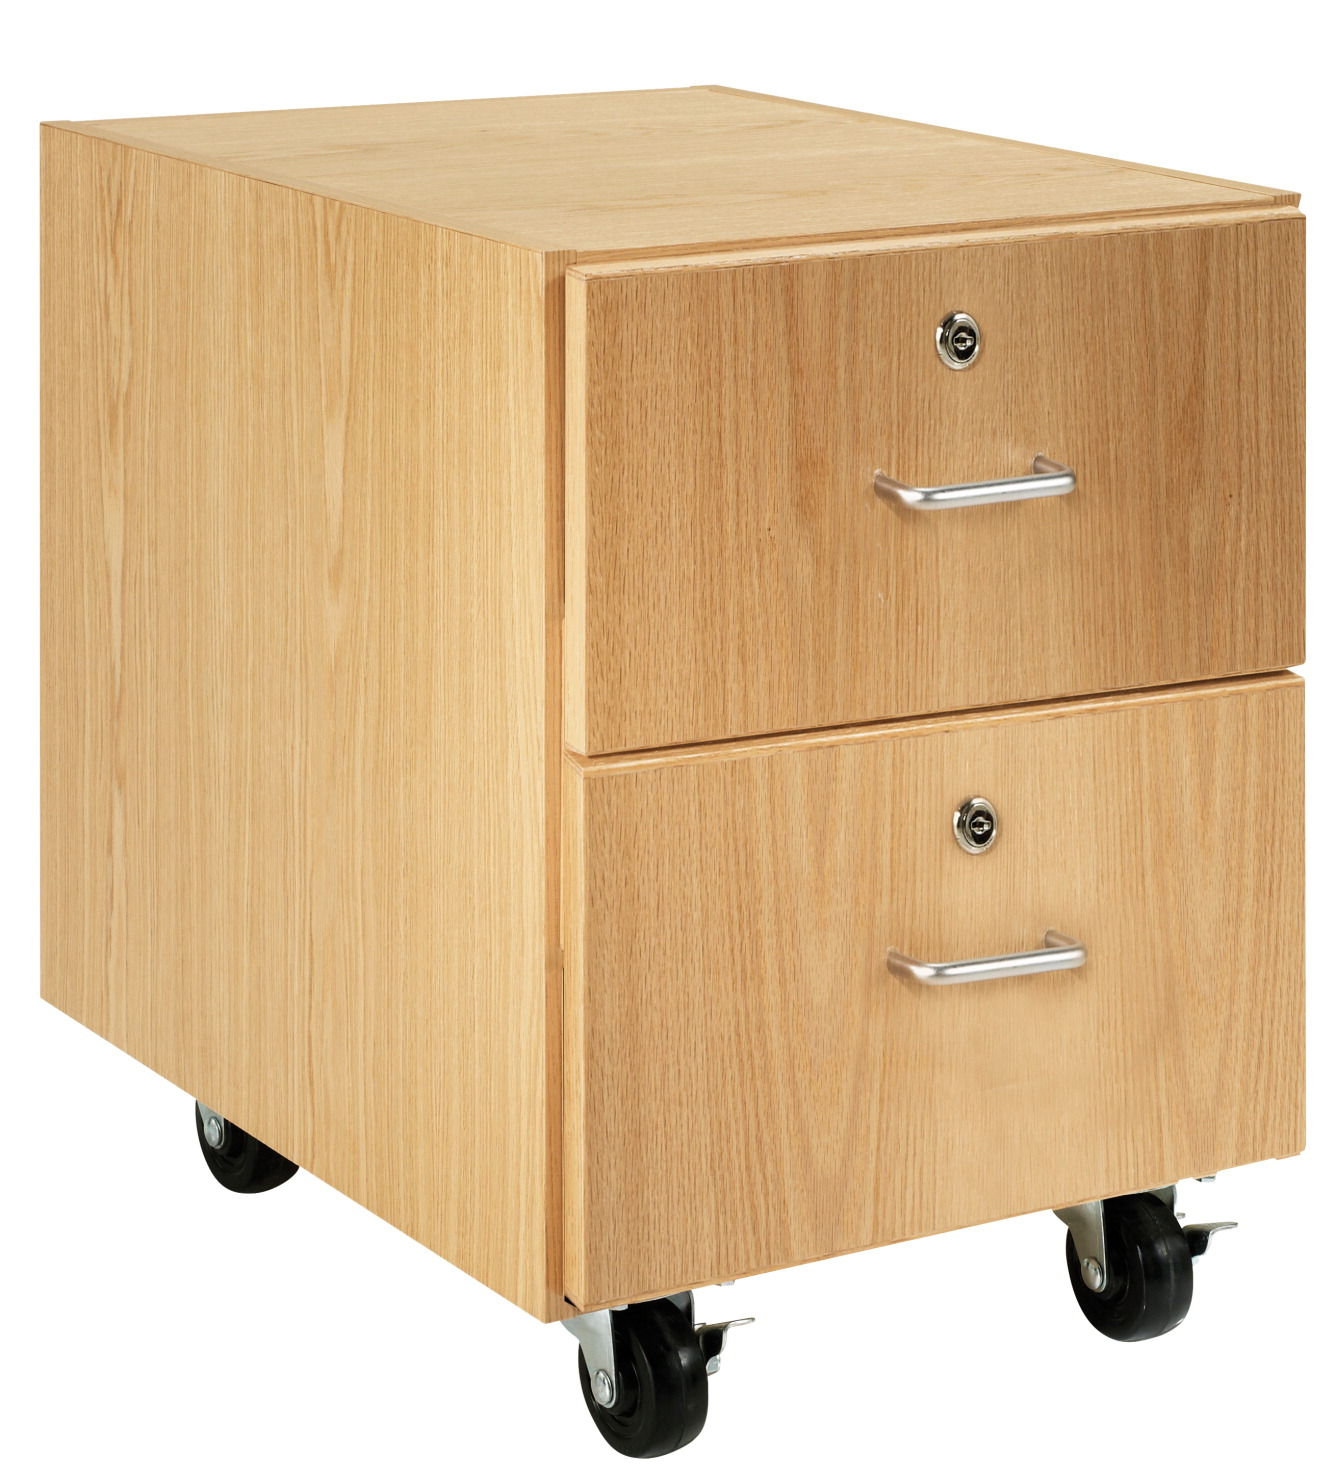 Diversified Woodcrafts M Series Mobile Storage Cabinet, Hinged Left Door, 1 Drawer, 24 x 22 x 30 Inches